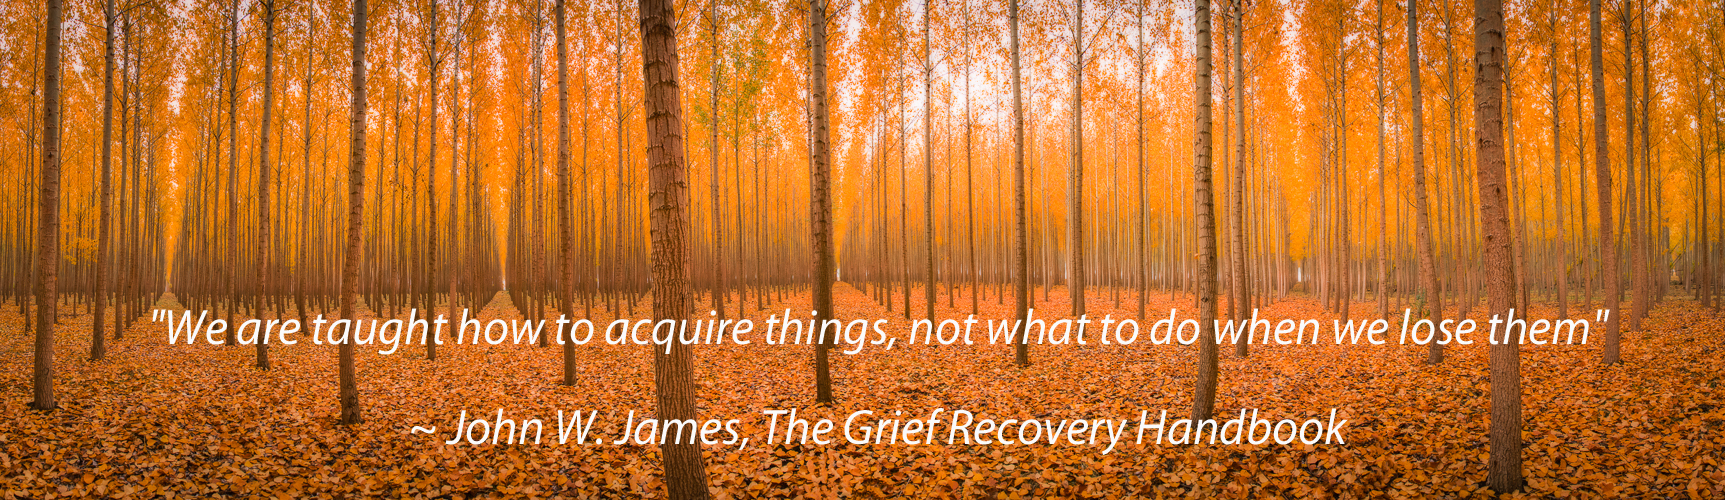 taught to acquire loss grief recovery method